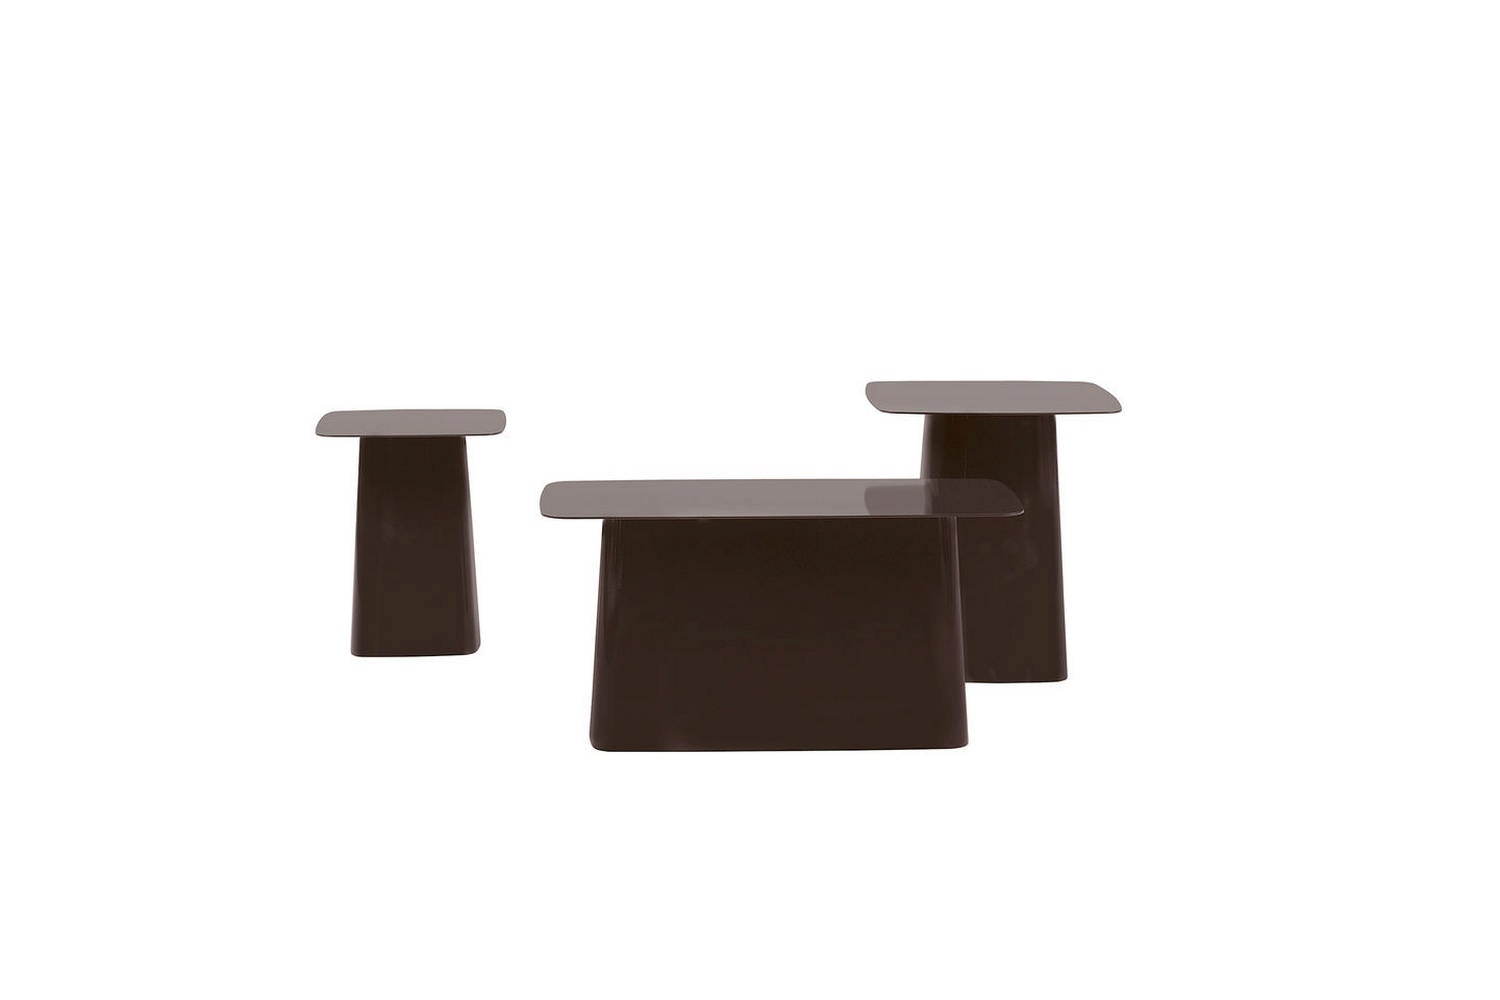 Metal Side Tables by Ronan & Erwan Bouroullec for Vitra